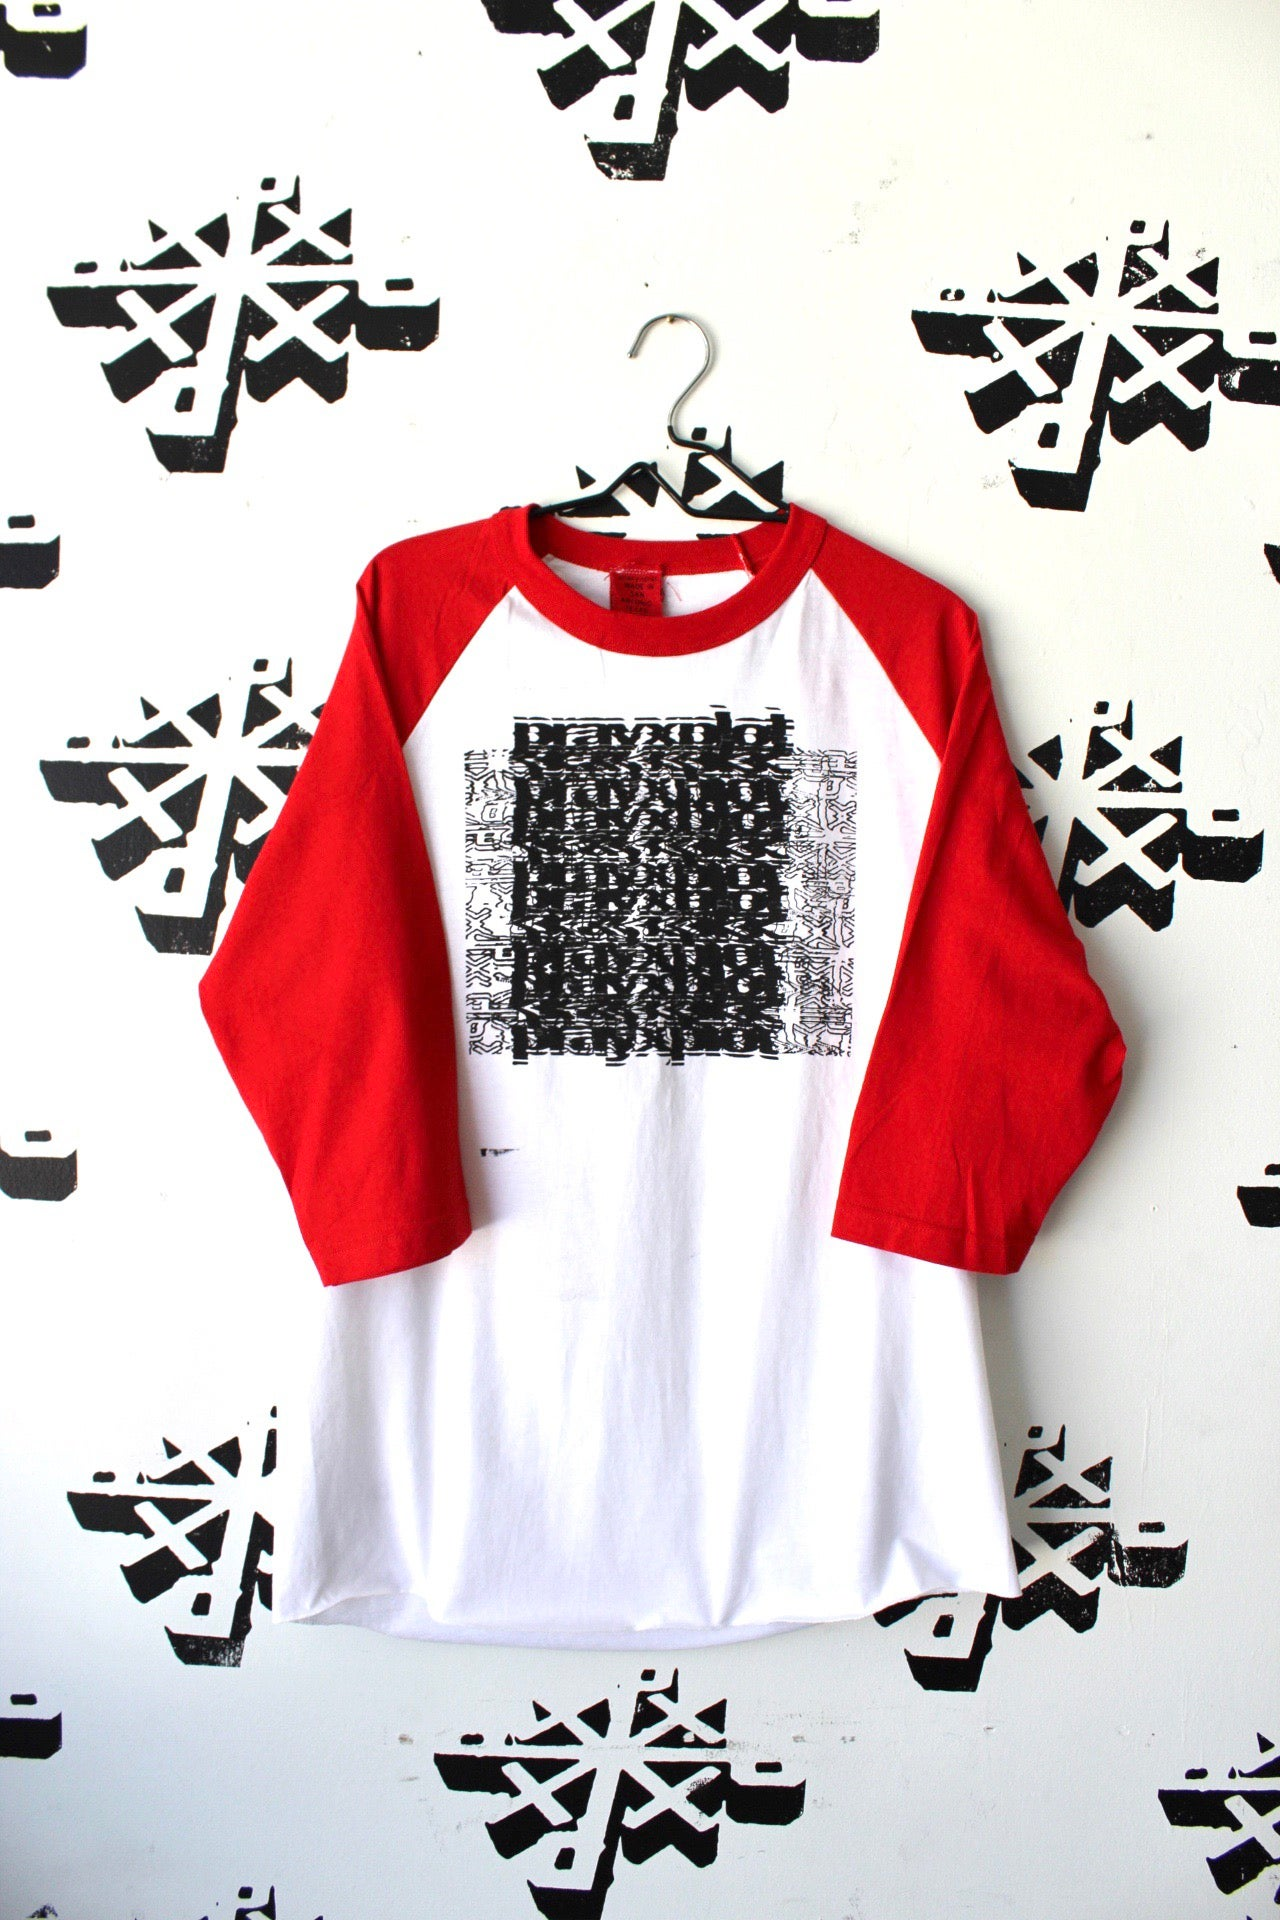 Image of really the right channel raglan in red and white